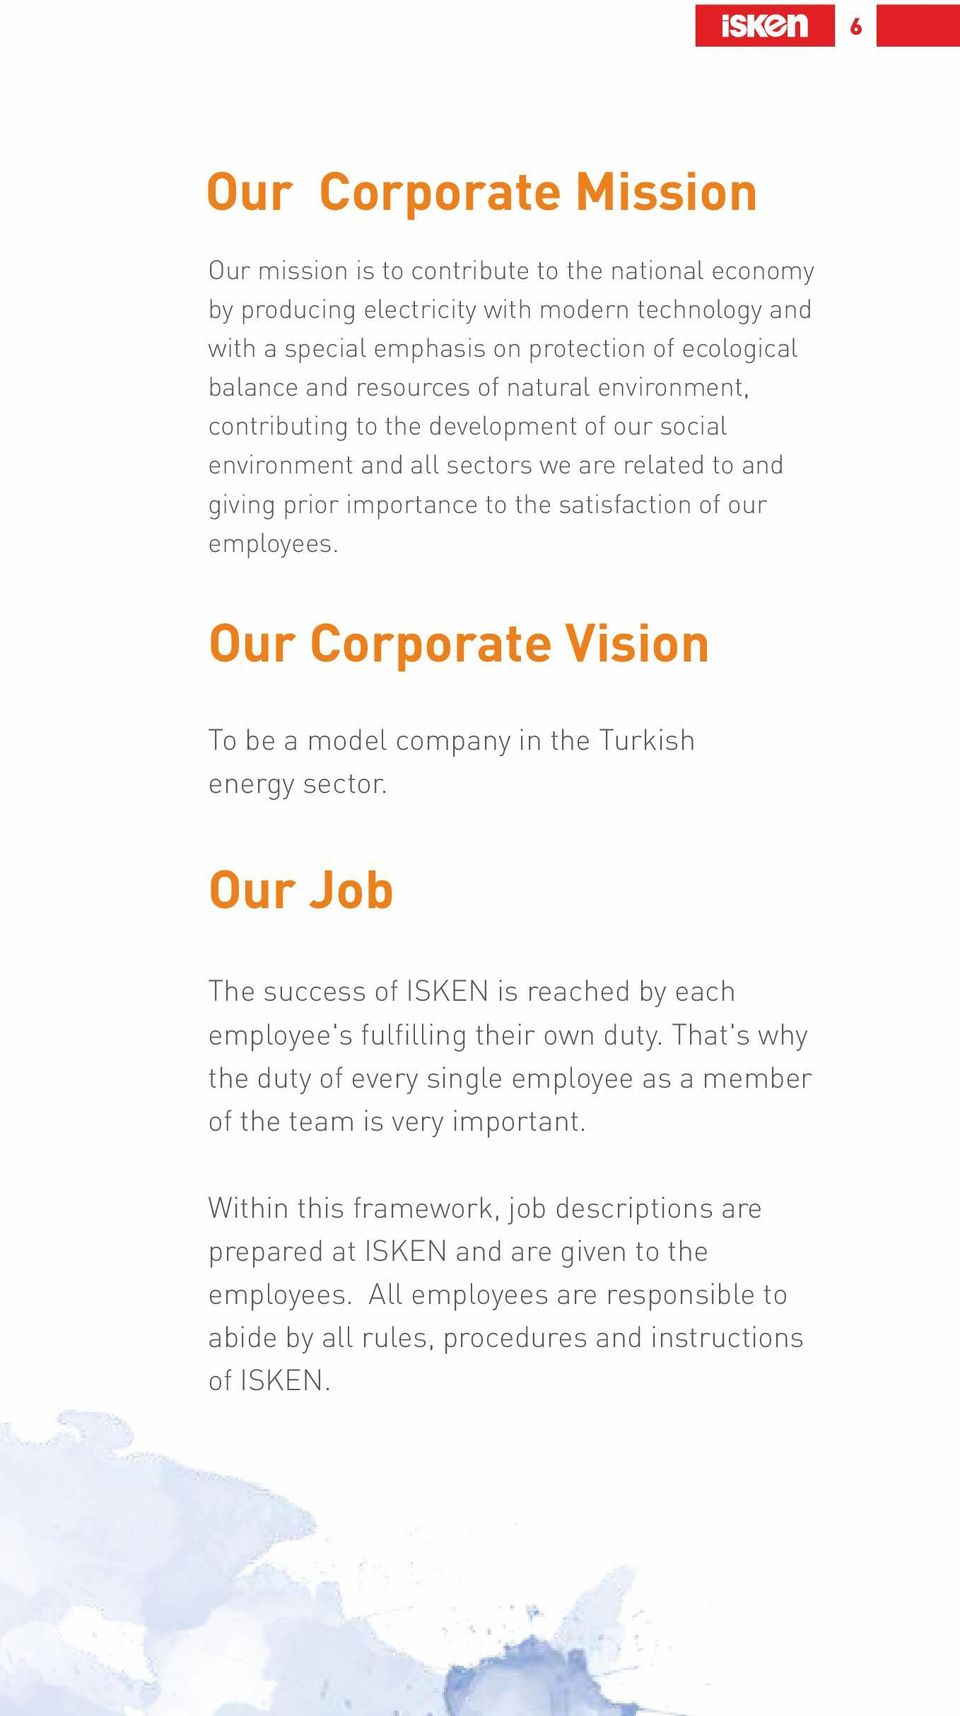 Our Corporate Vision To be a model company in the Turkish energy sector. Our Job The success of ISKEN is reached by each employee's fulfilling their own duty.